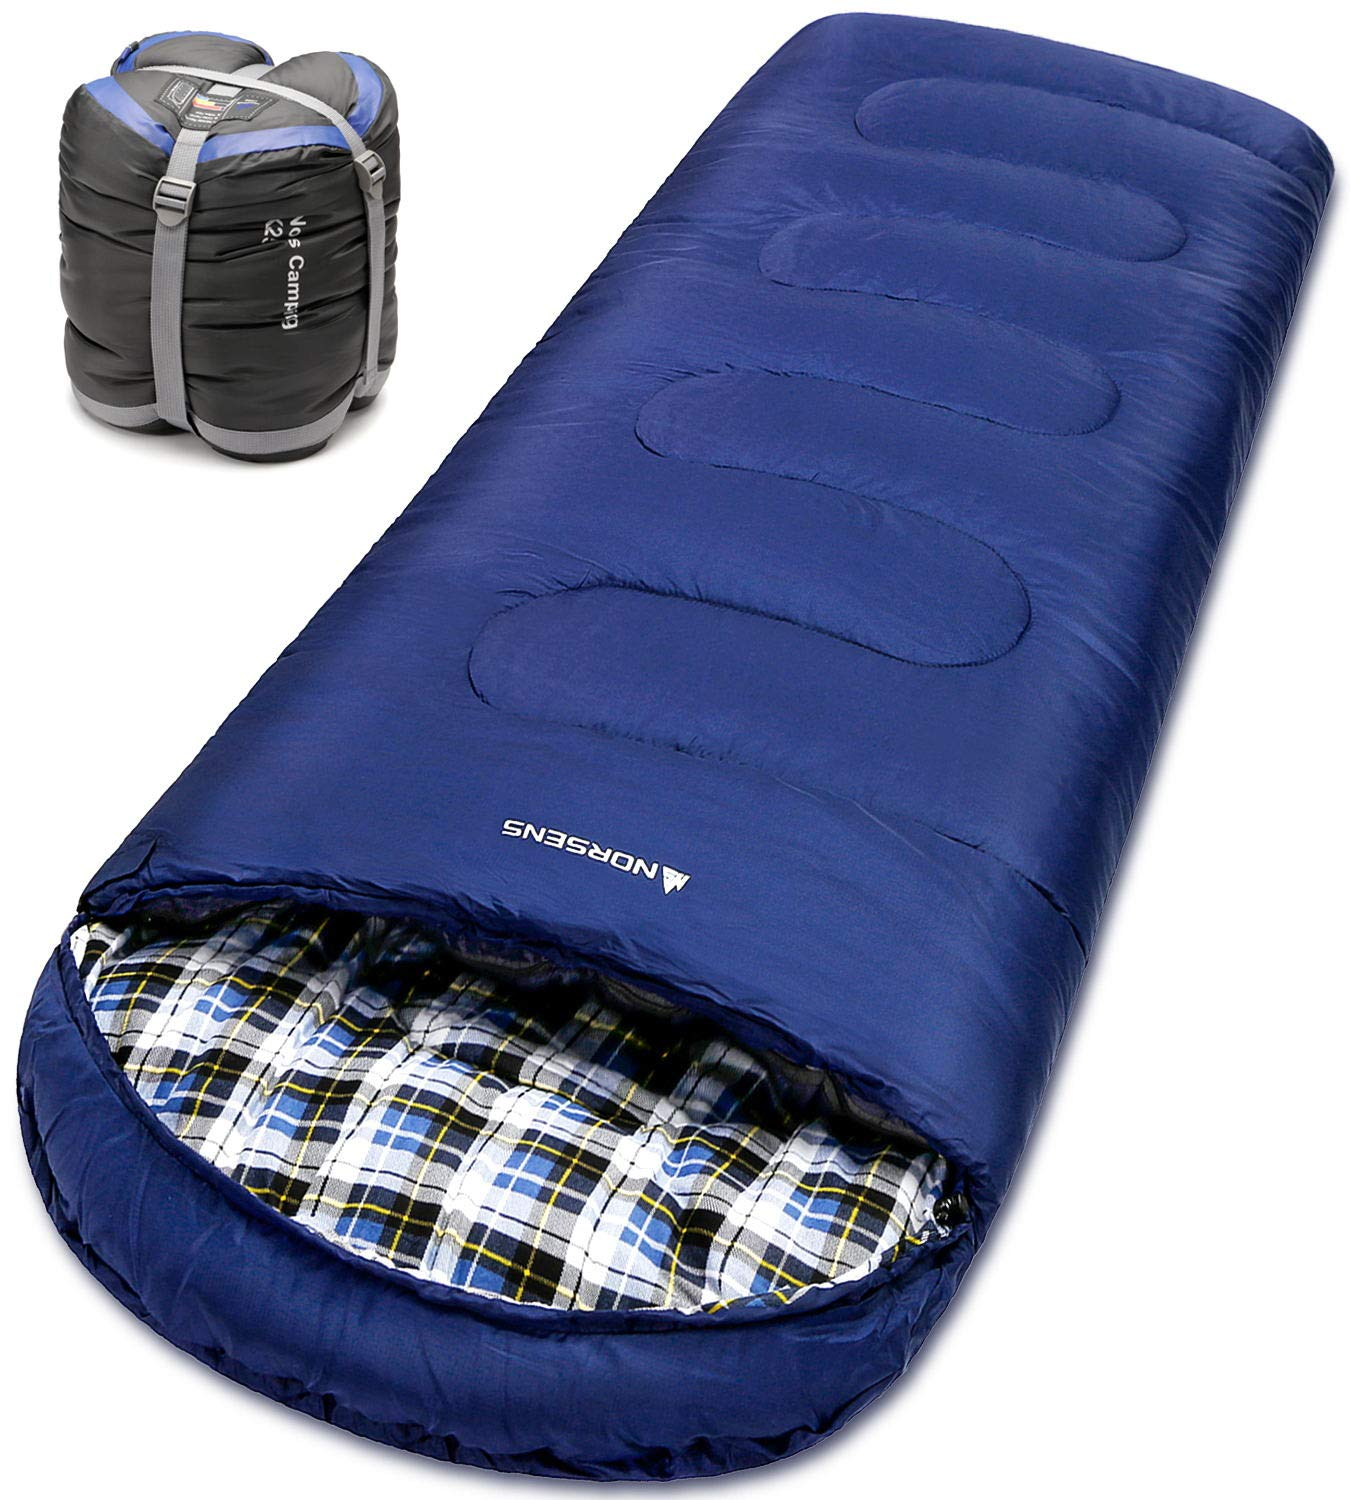 NORSENS Sleeping Bags for Adults Cold Weather 0 Degree, Lightweight Compact Backpacking Sleeping Bags with Upgraded Compression Sack, XL by NORSENS